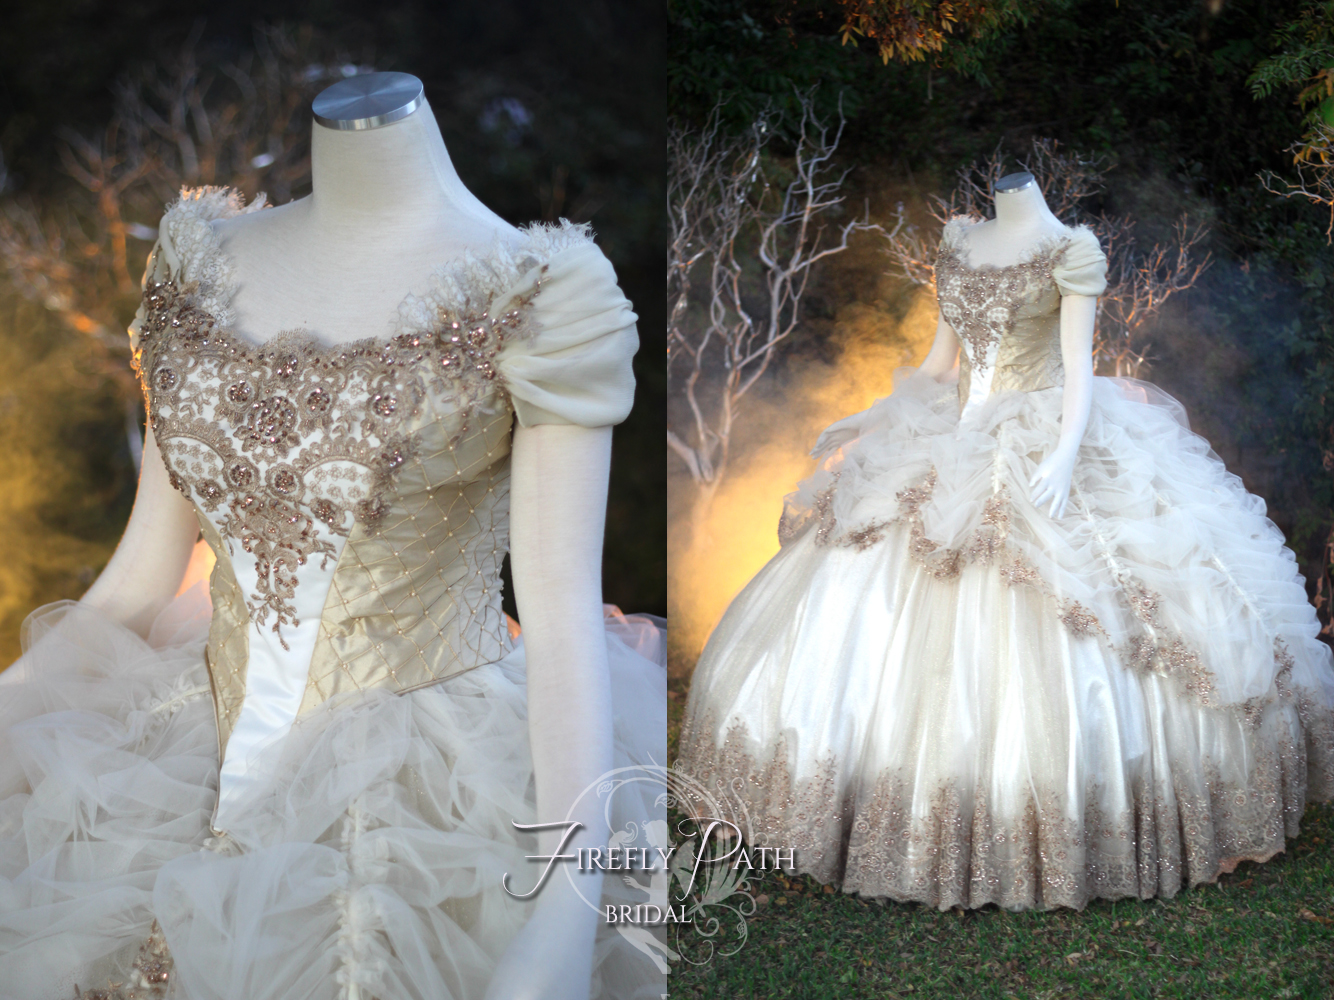 Beauty and the beast wedding gown by firefly path on for Beauty and the beast style wedding dress